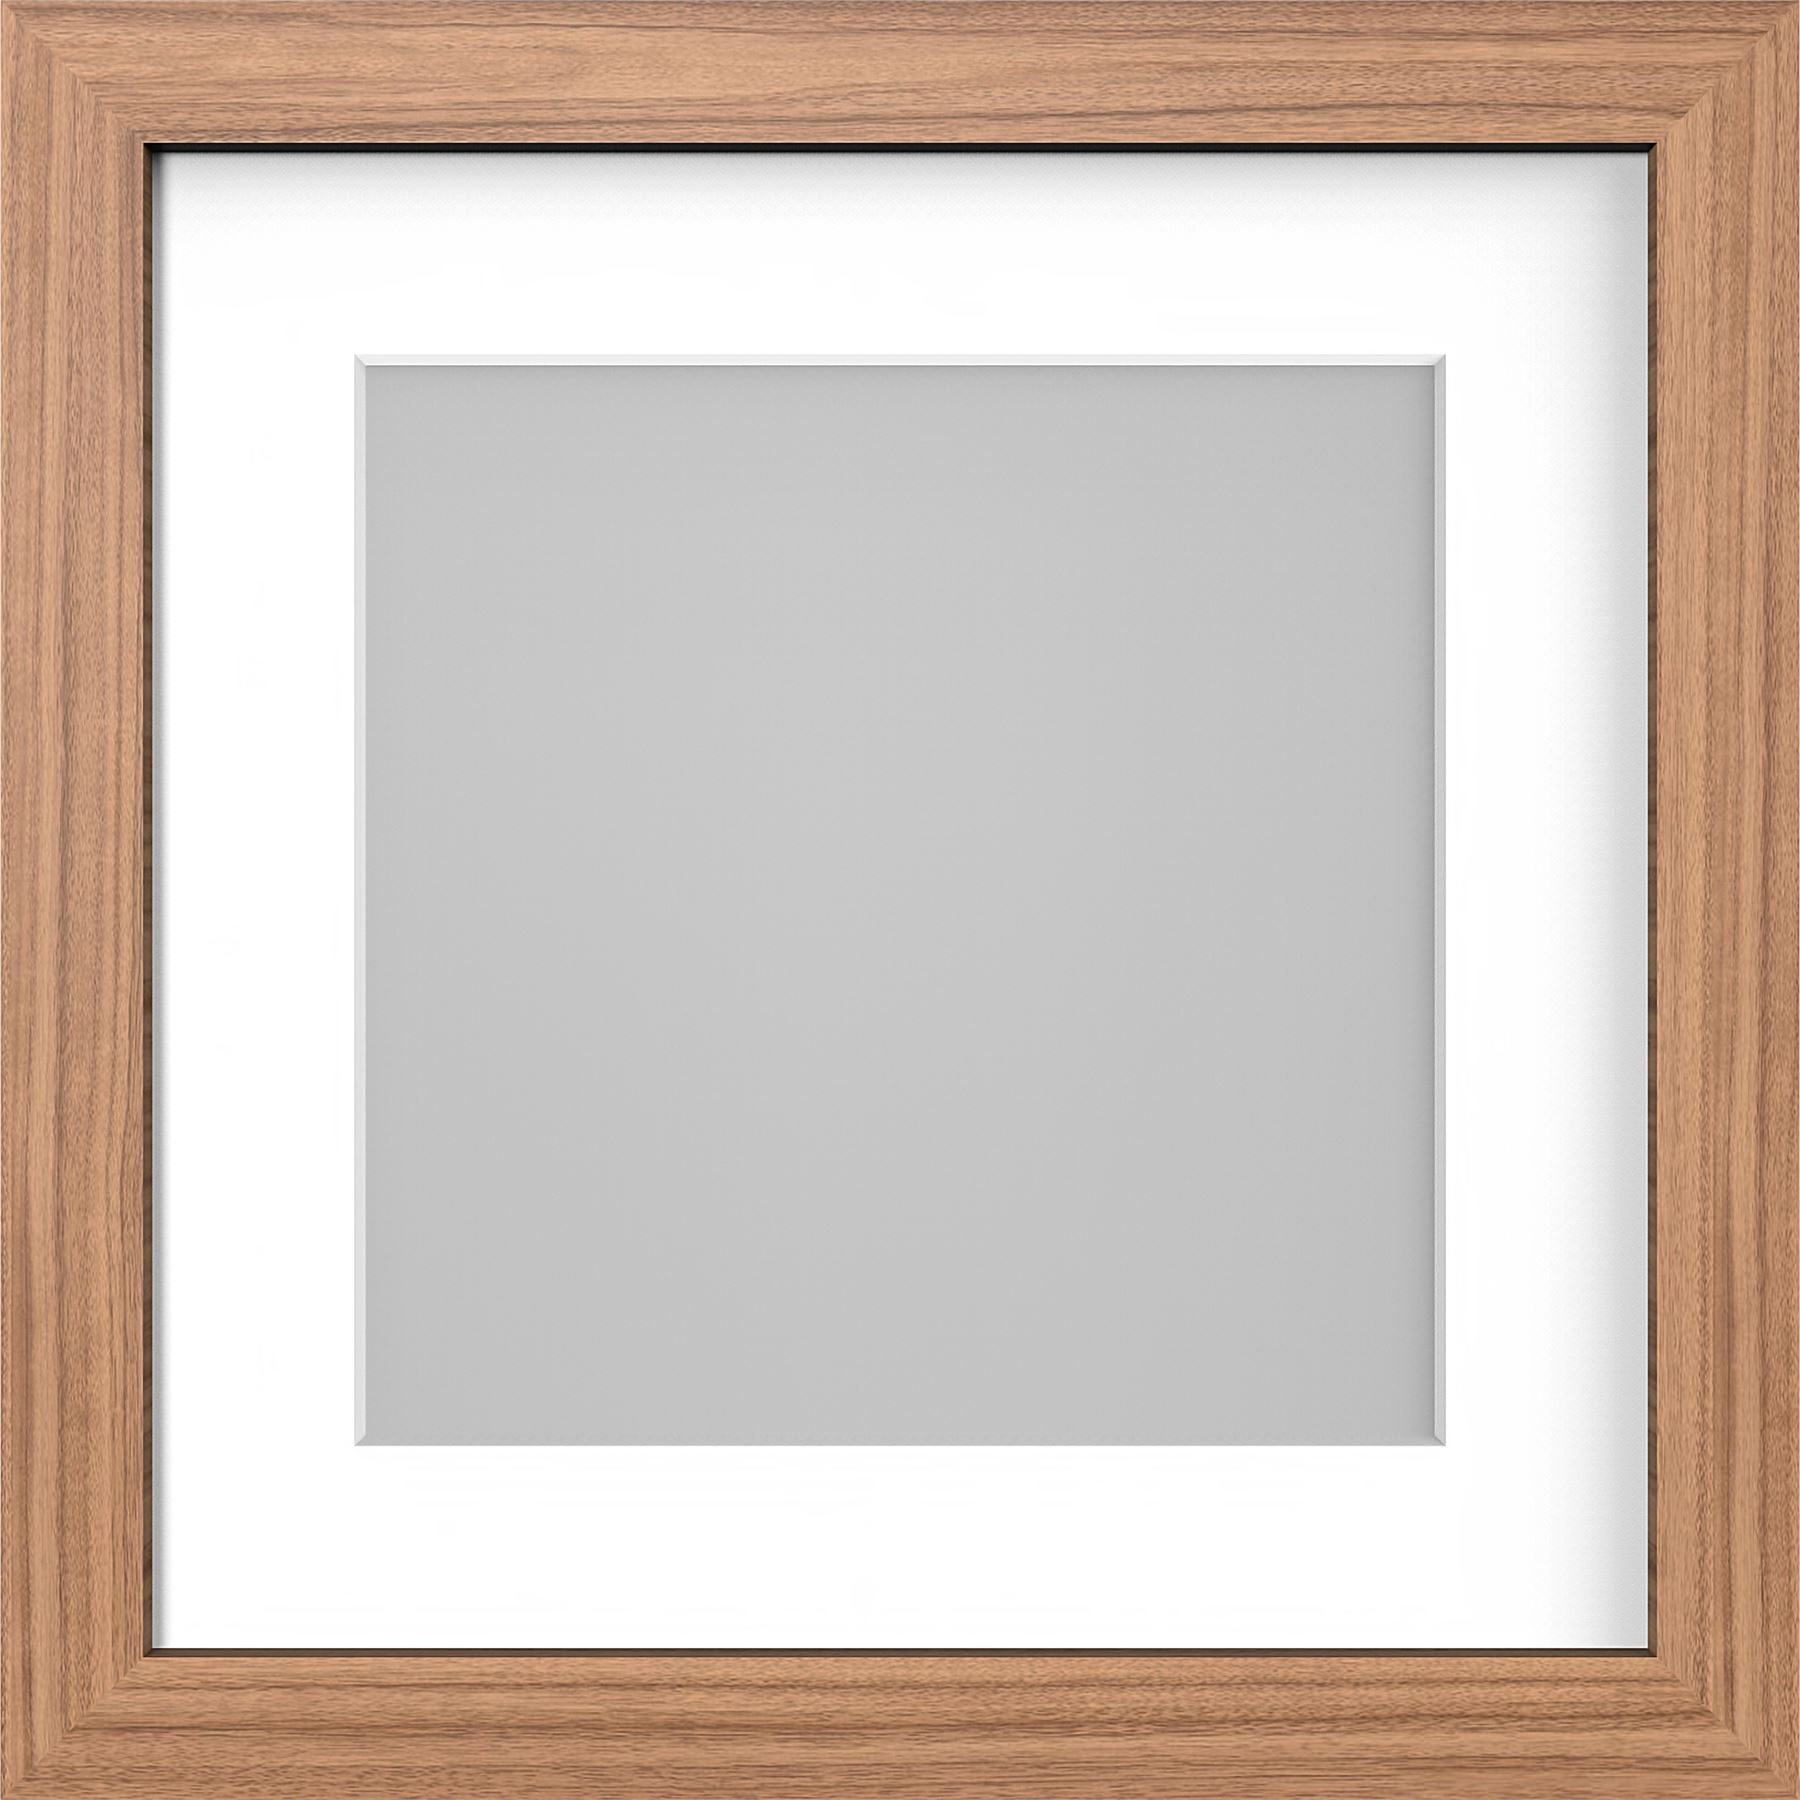 Square Photo Picture Frame with White Mounts Wood Effect Black White ...